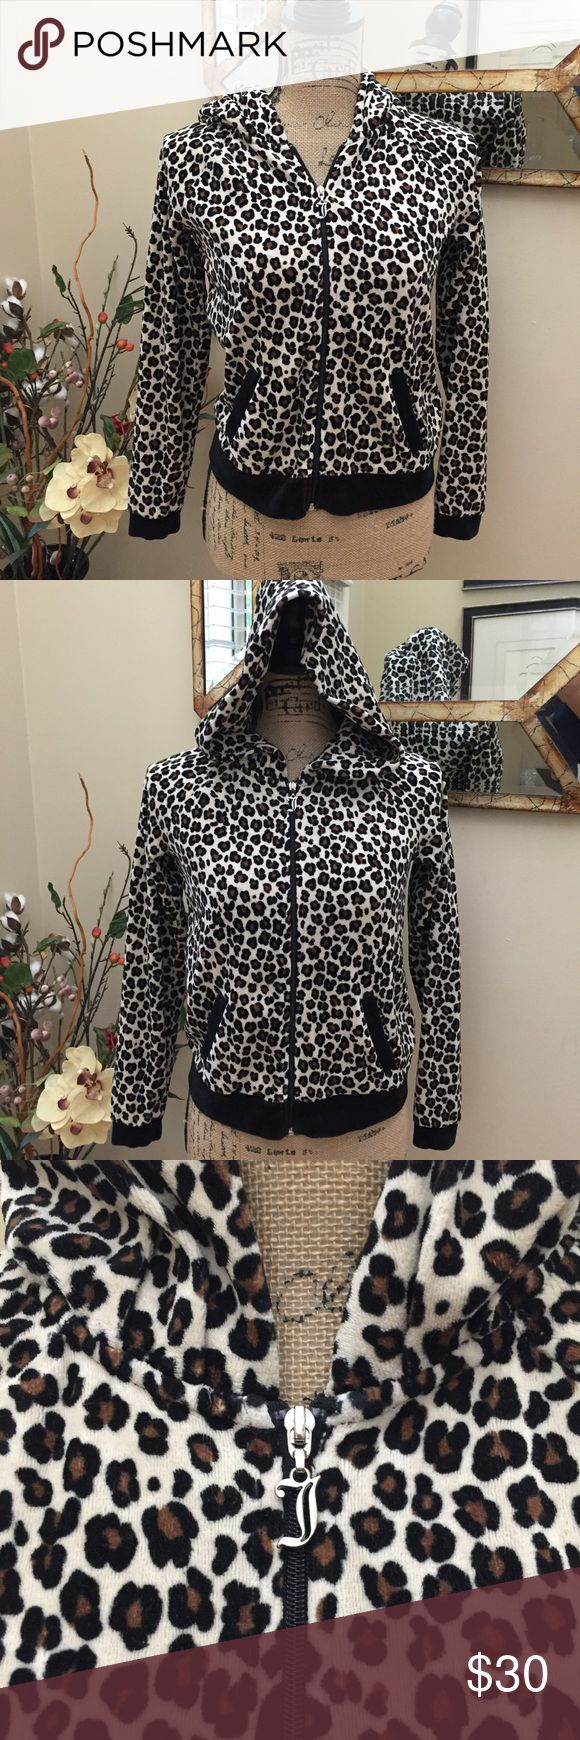 """🌟Juicy Couture full zip animal print hoodie. 🌟Juicy Couture full zip animal print hoodie. This is a super soft hoodie with front pockets. On trend fall animal print. Perfect for fall to winter layering. Wear to the office the park or on a date. Very versatile. Preloved in excellent condition. Pit to pit at the back is 15"""". Length 22"""". Juicy Couture Tops Sweatshirts & Hoodies"""